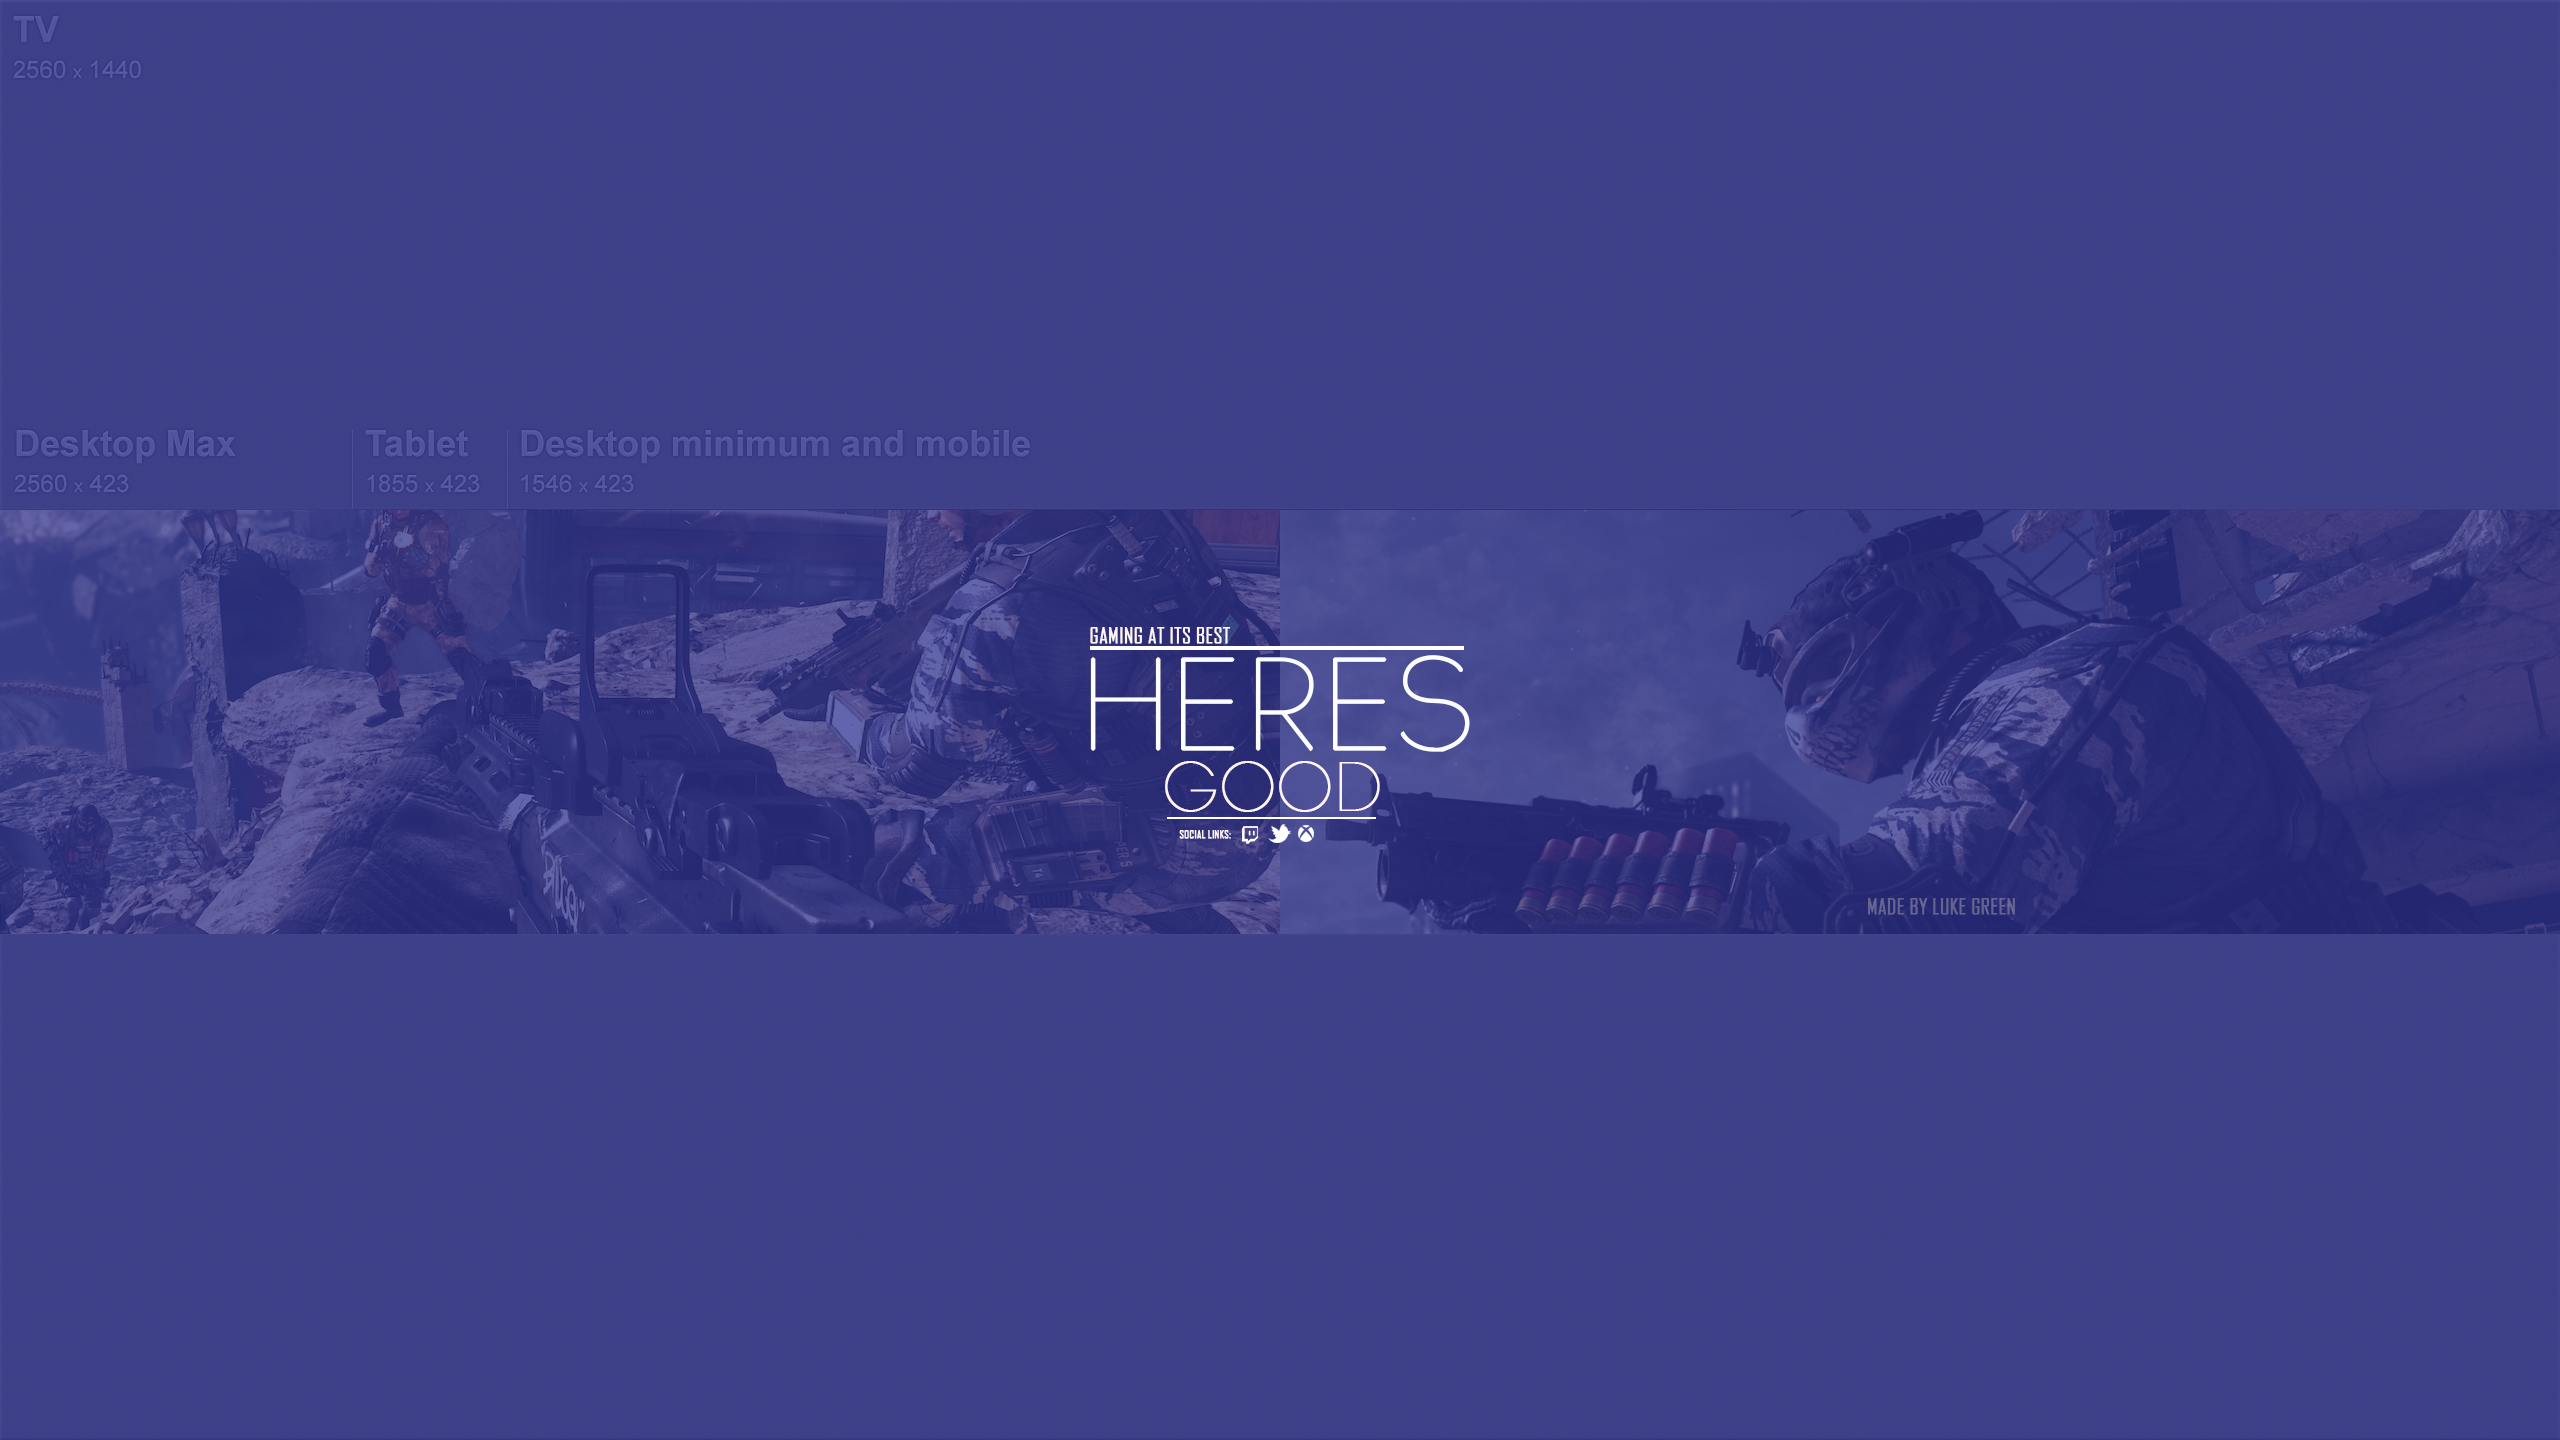 Youtube Banner Heres Good by Exitrax on DeviantArt